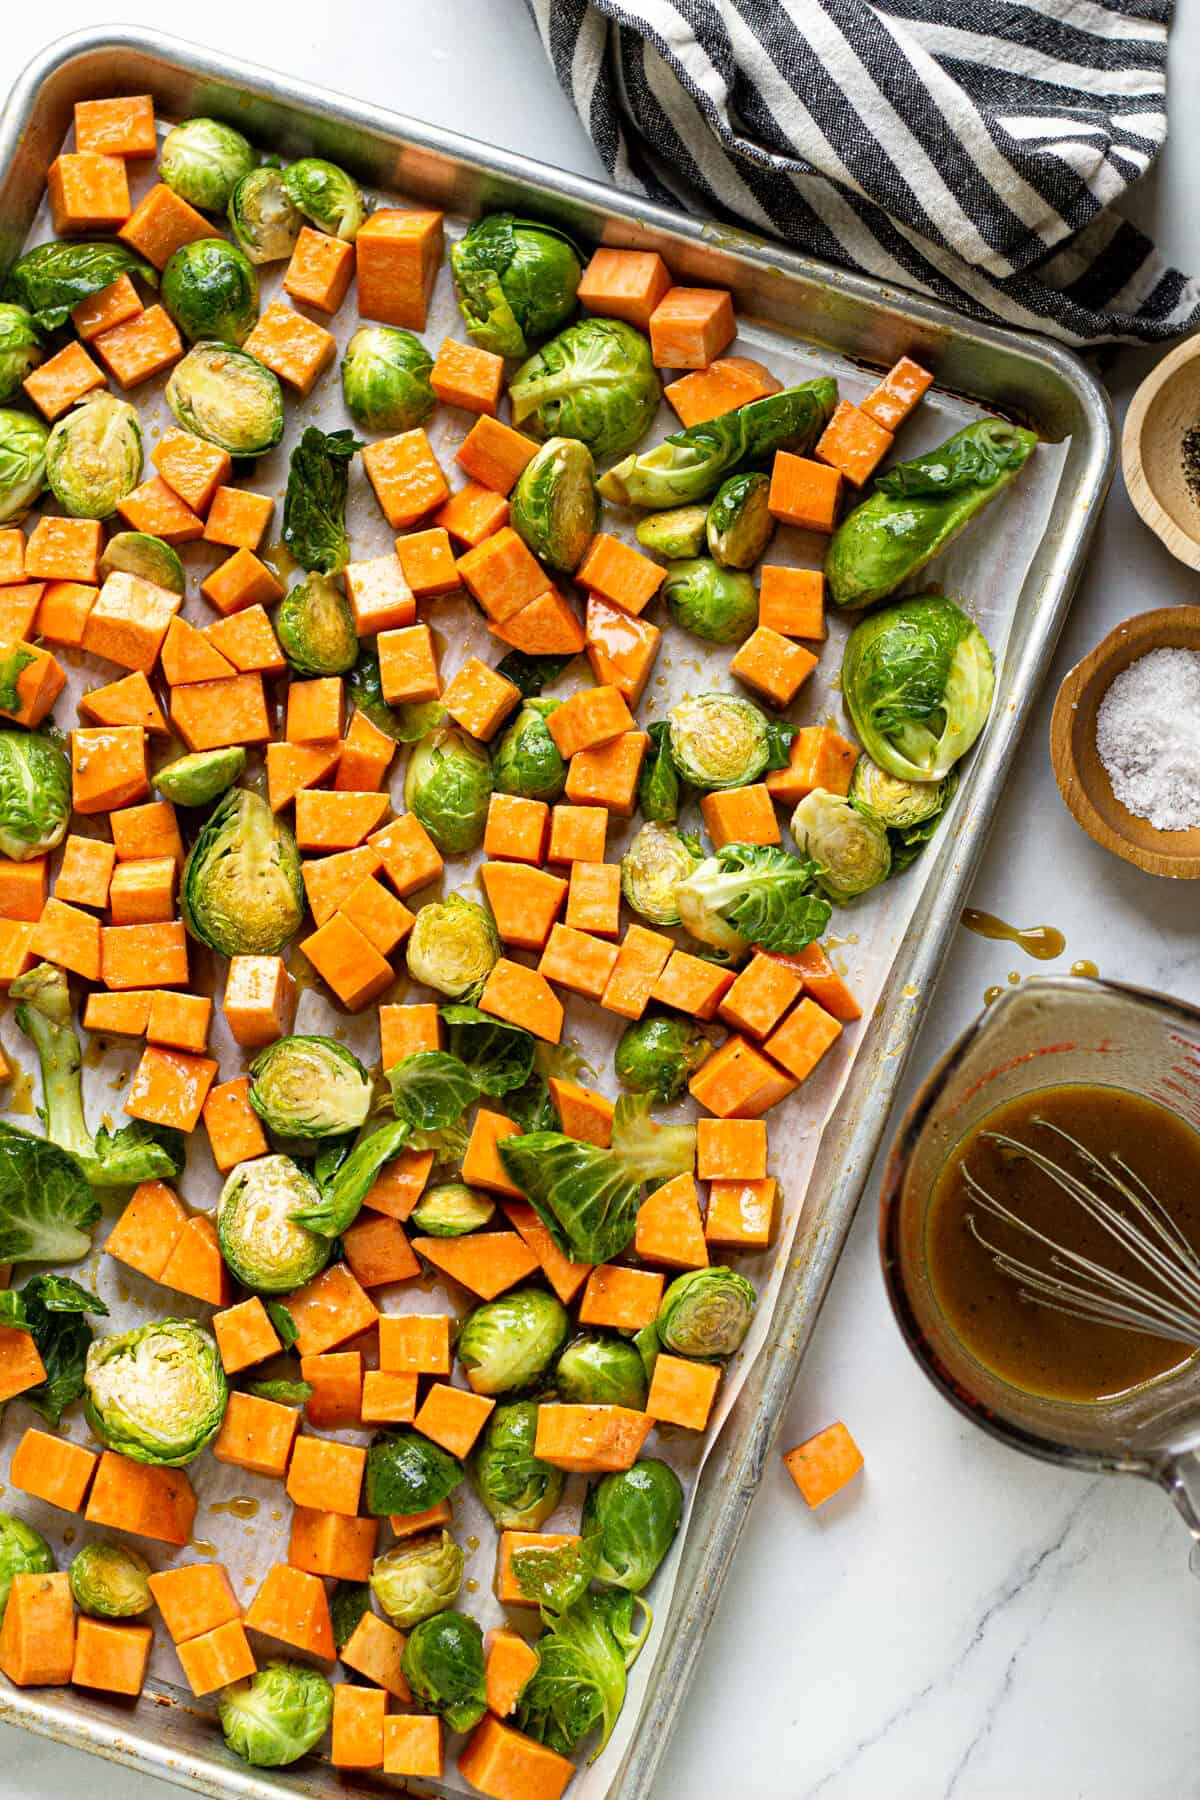 A sheet pan of Brussels sprouts and cubed sweet potatoes